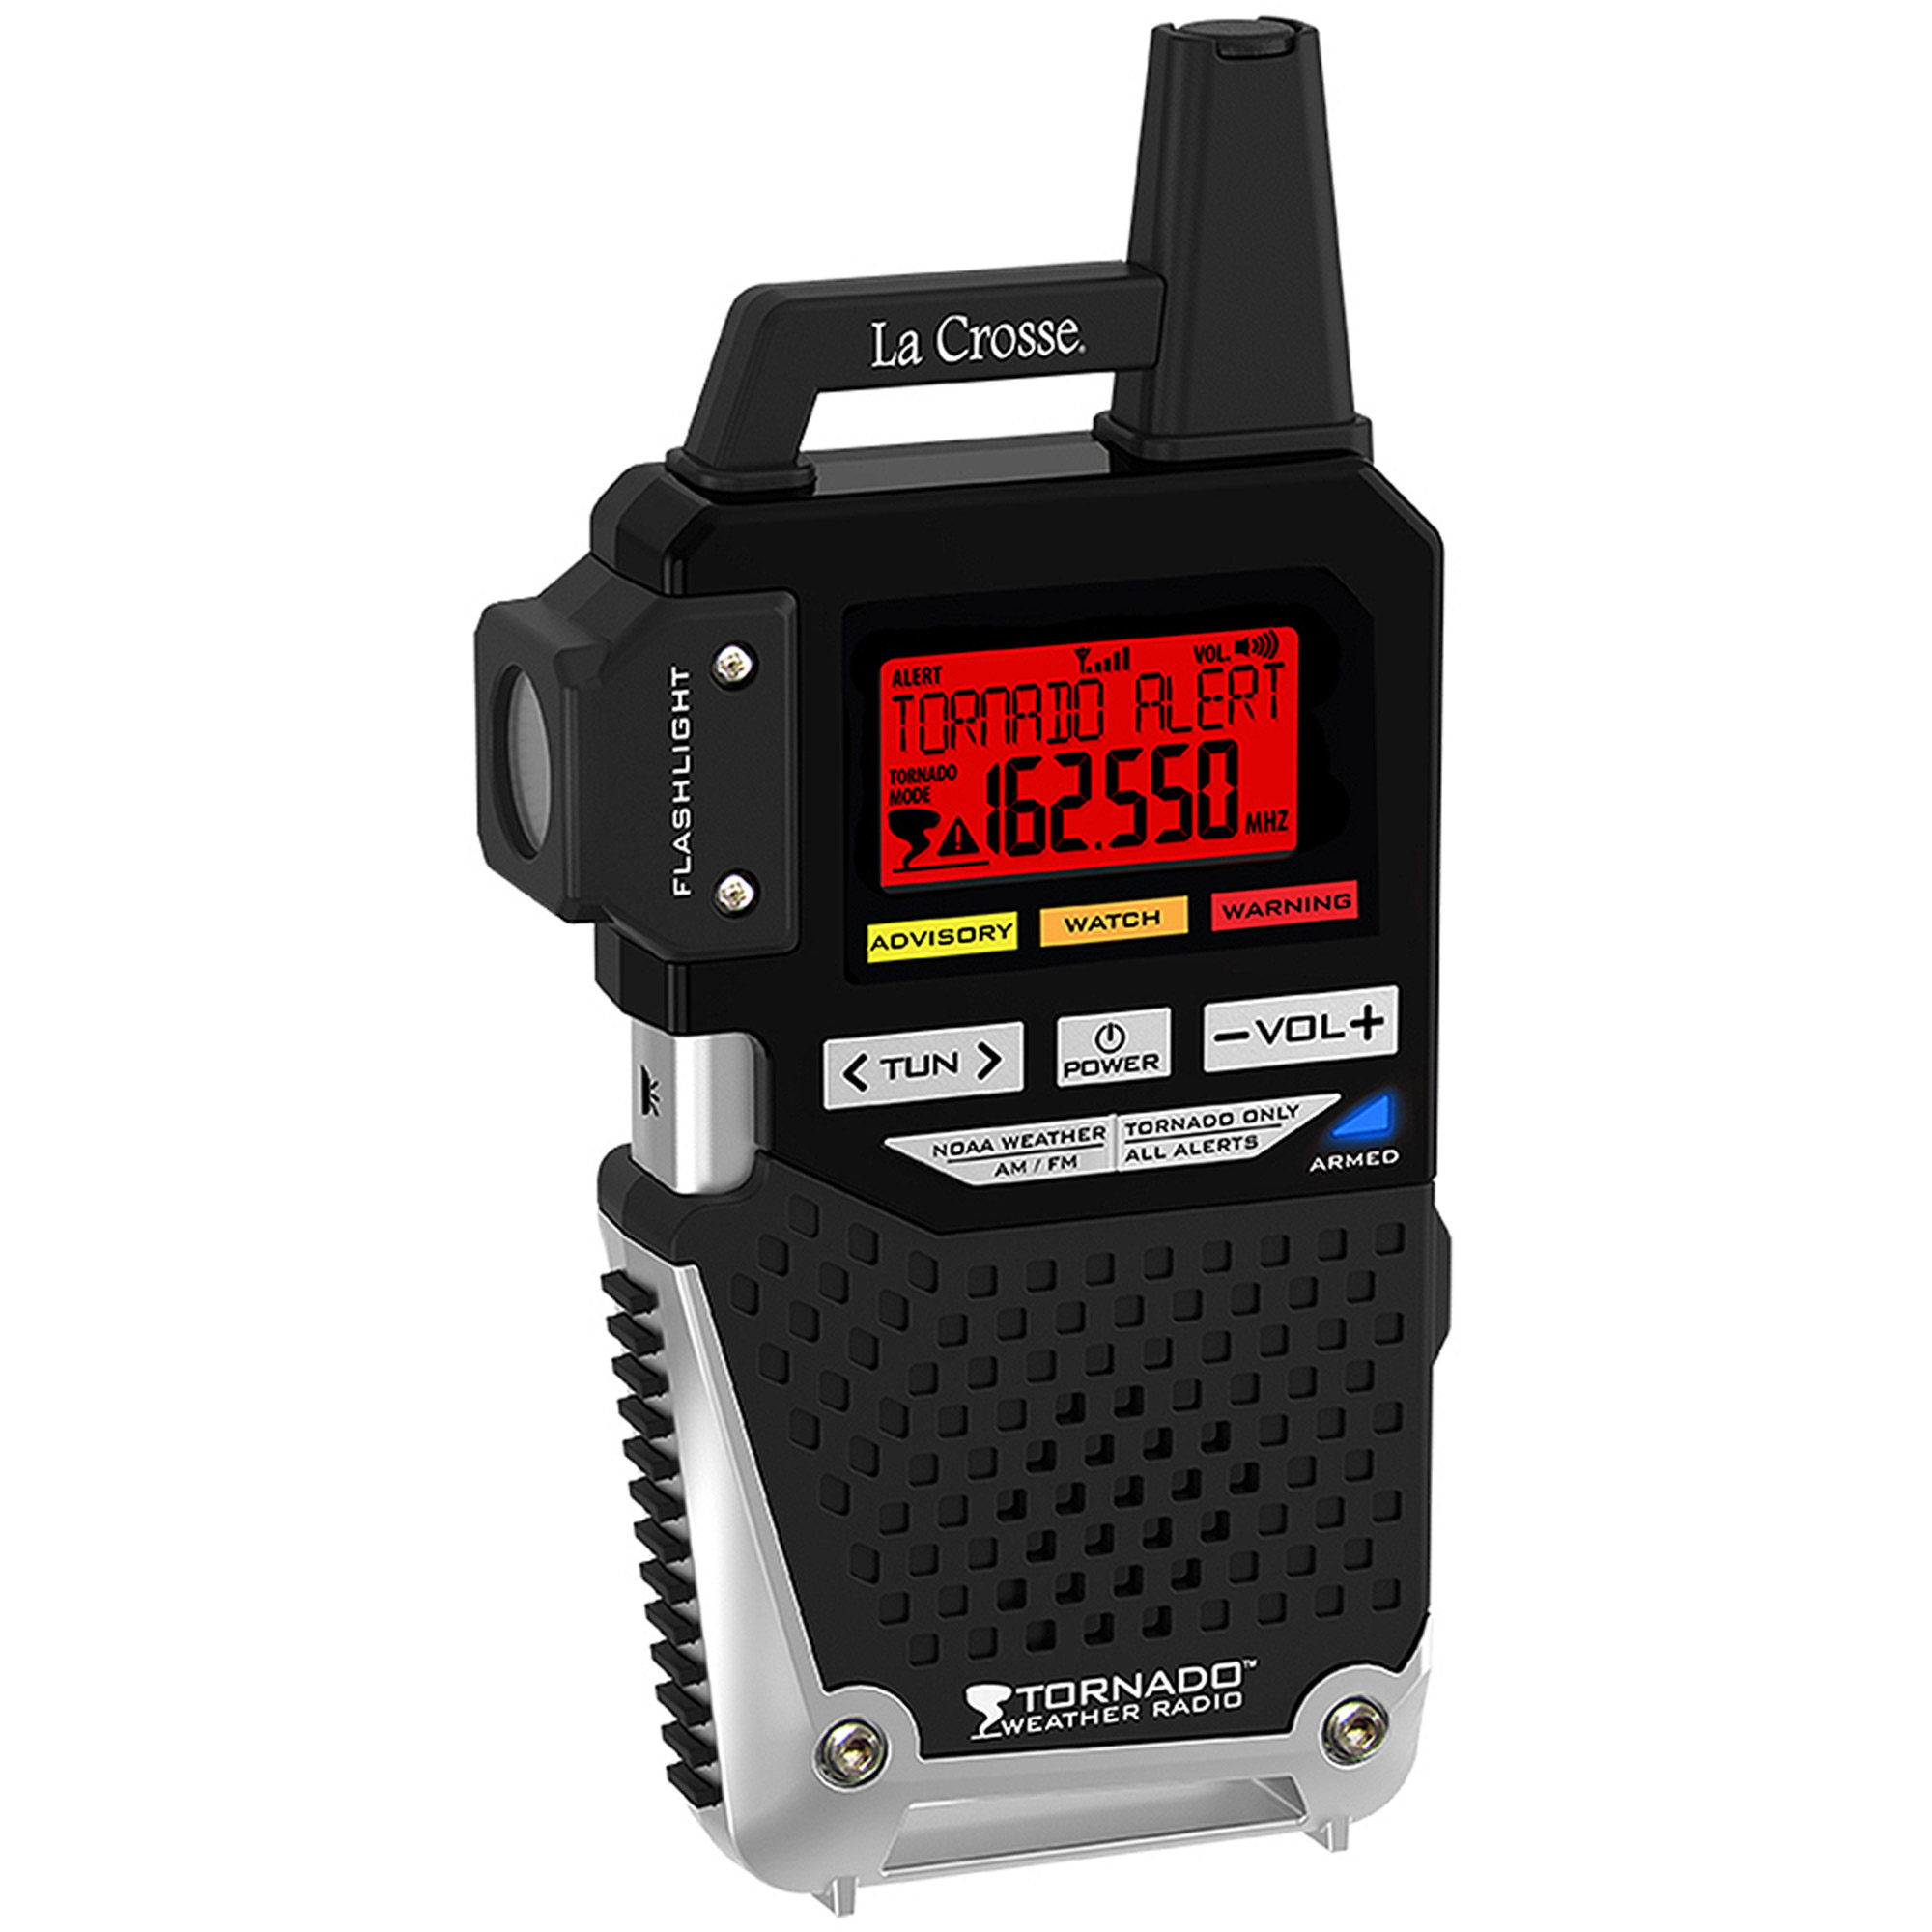 La Crosse NOAA/AM/FM Weather Alert Radio with One-Button Alert for Tornado Only